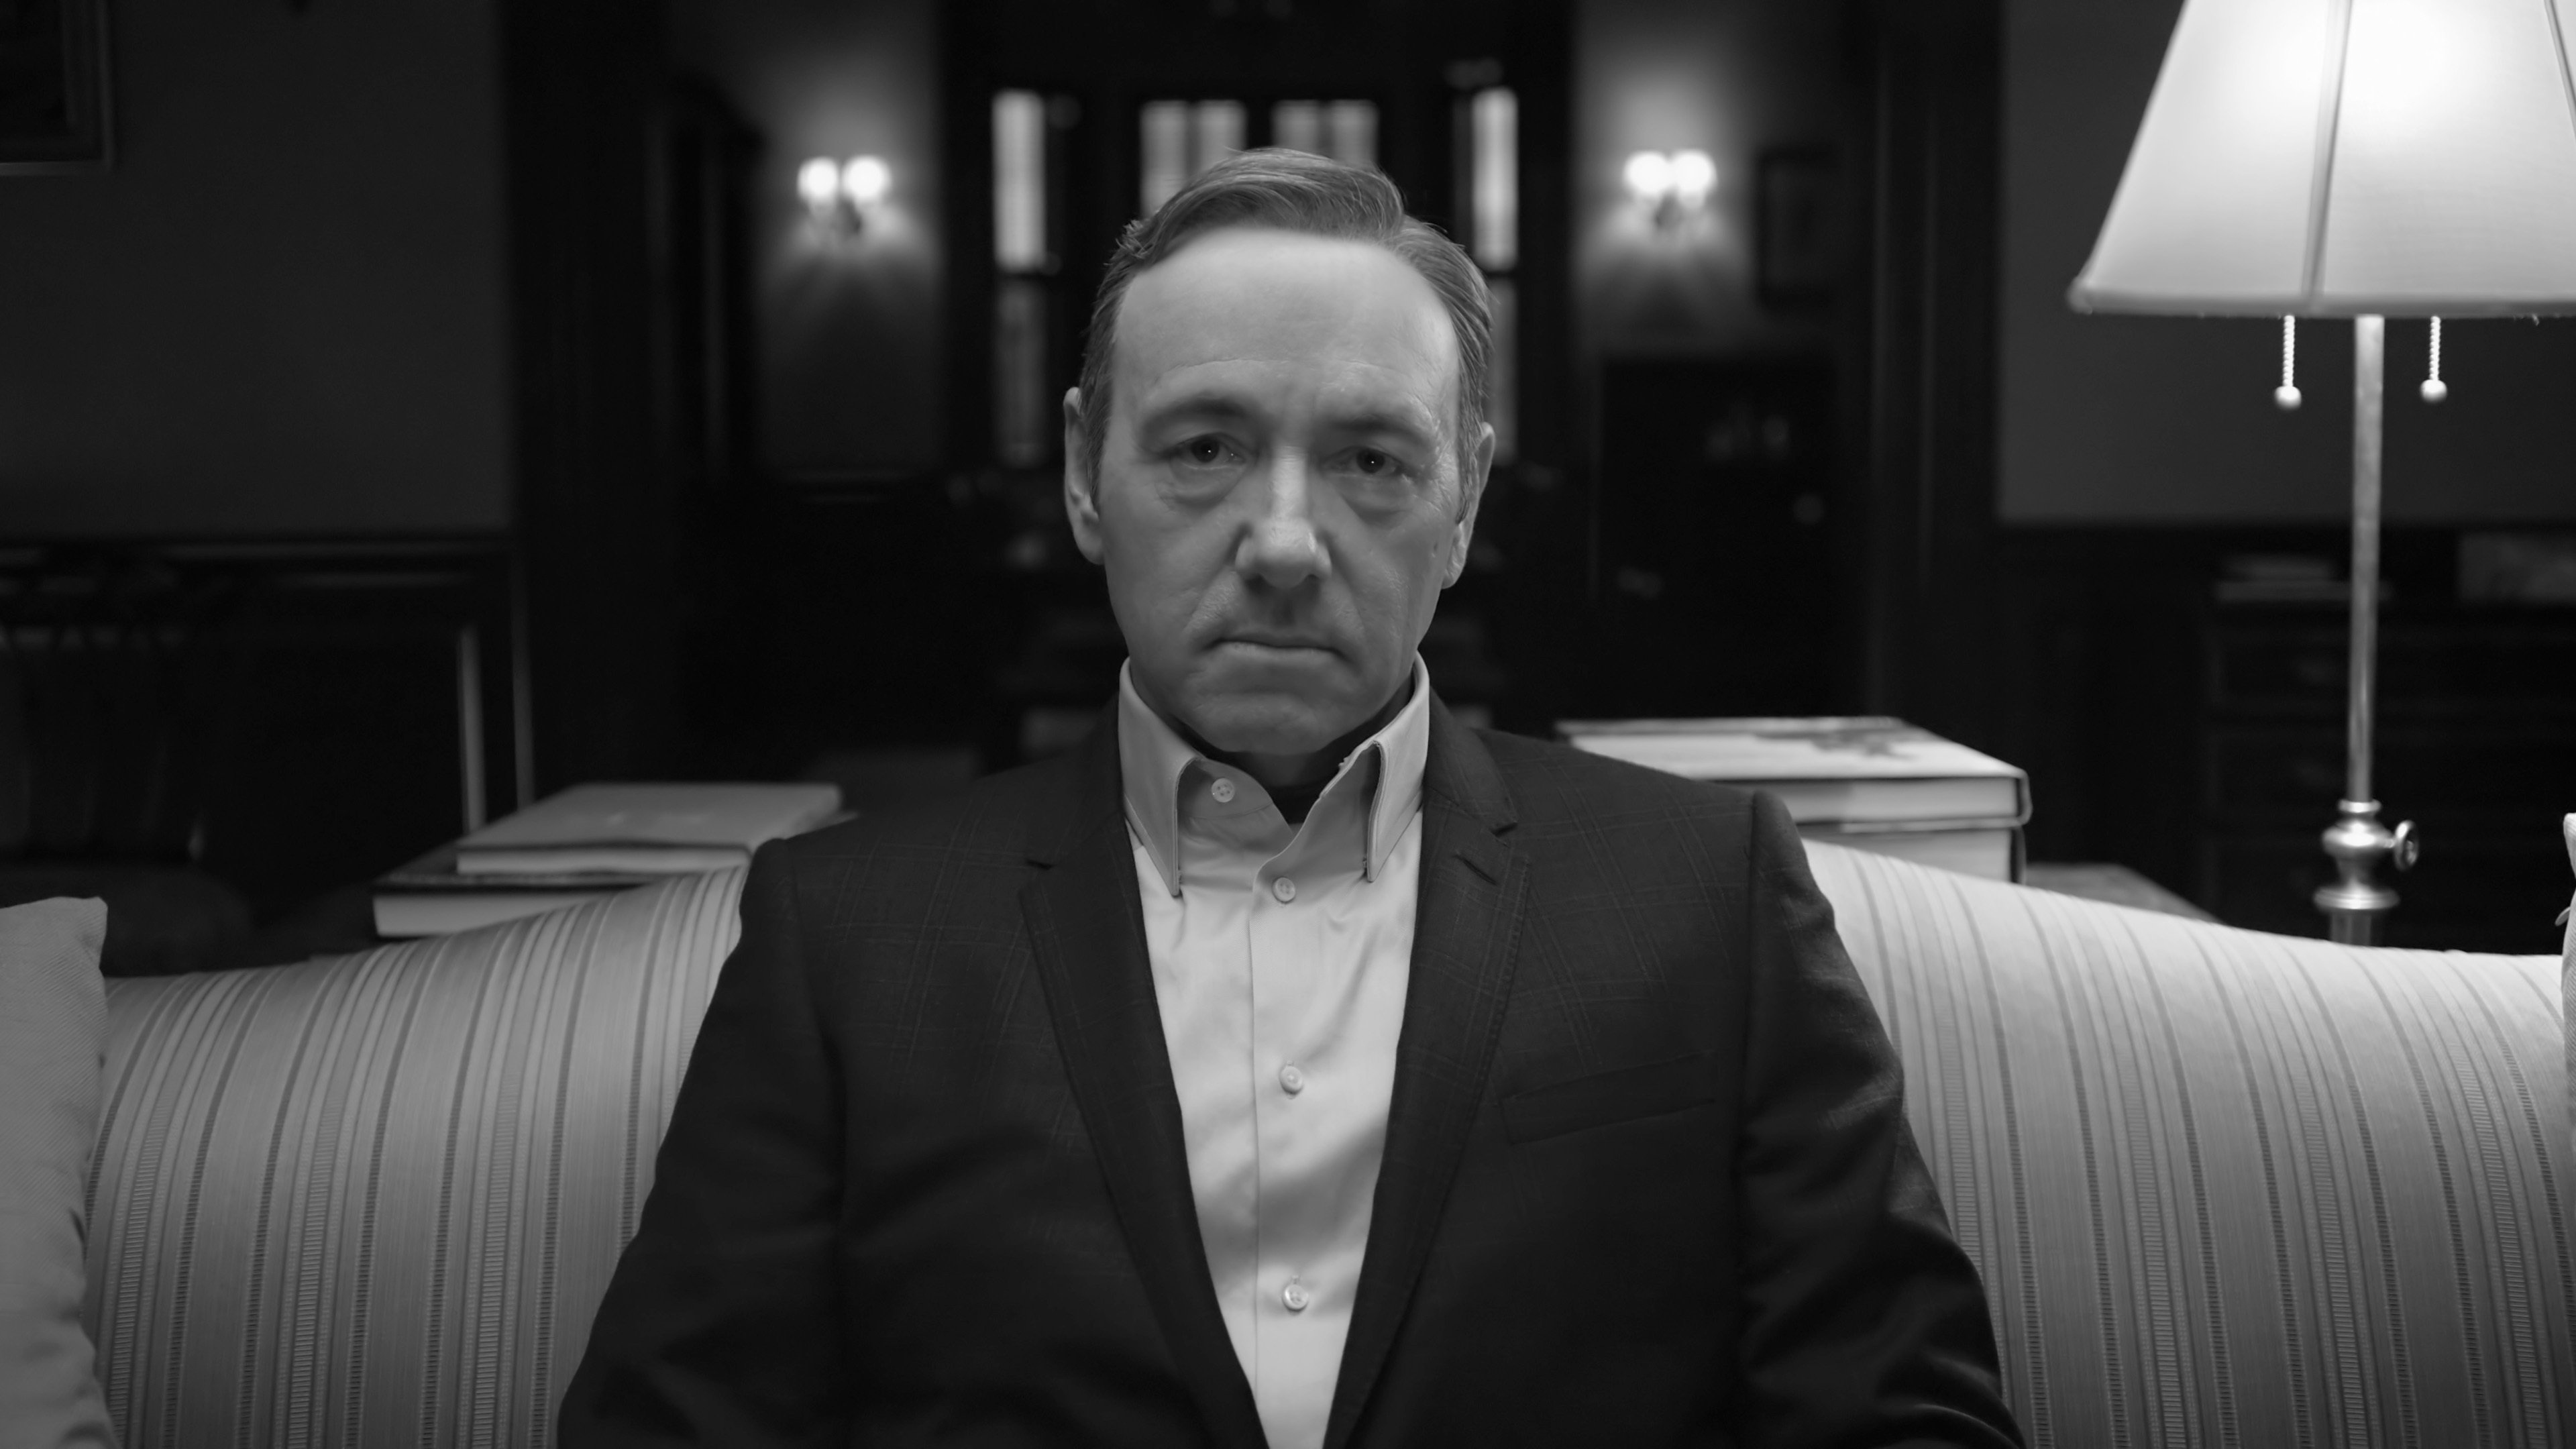 House of cards 4k ultra hd wallpaper background image - Spacey wallpaper ...